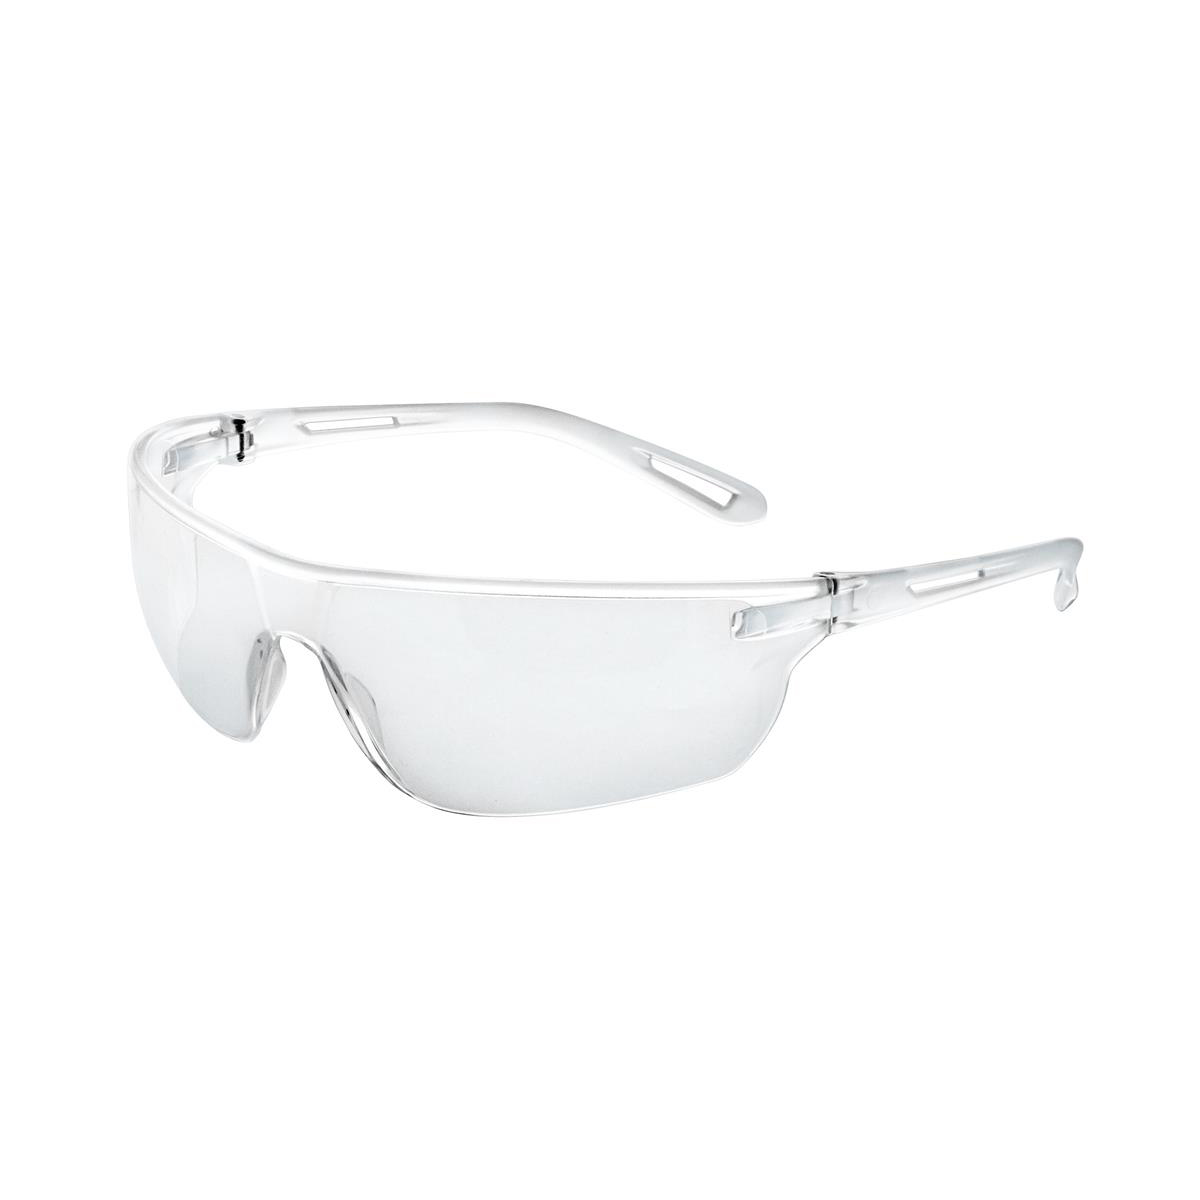 Safety glasses JSP Stealth Safety Spectacles Ultra Thin Lenses 16g EN166 1.F Clear Ref ASA920-161-300